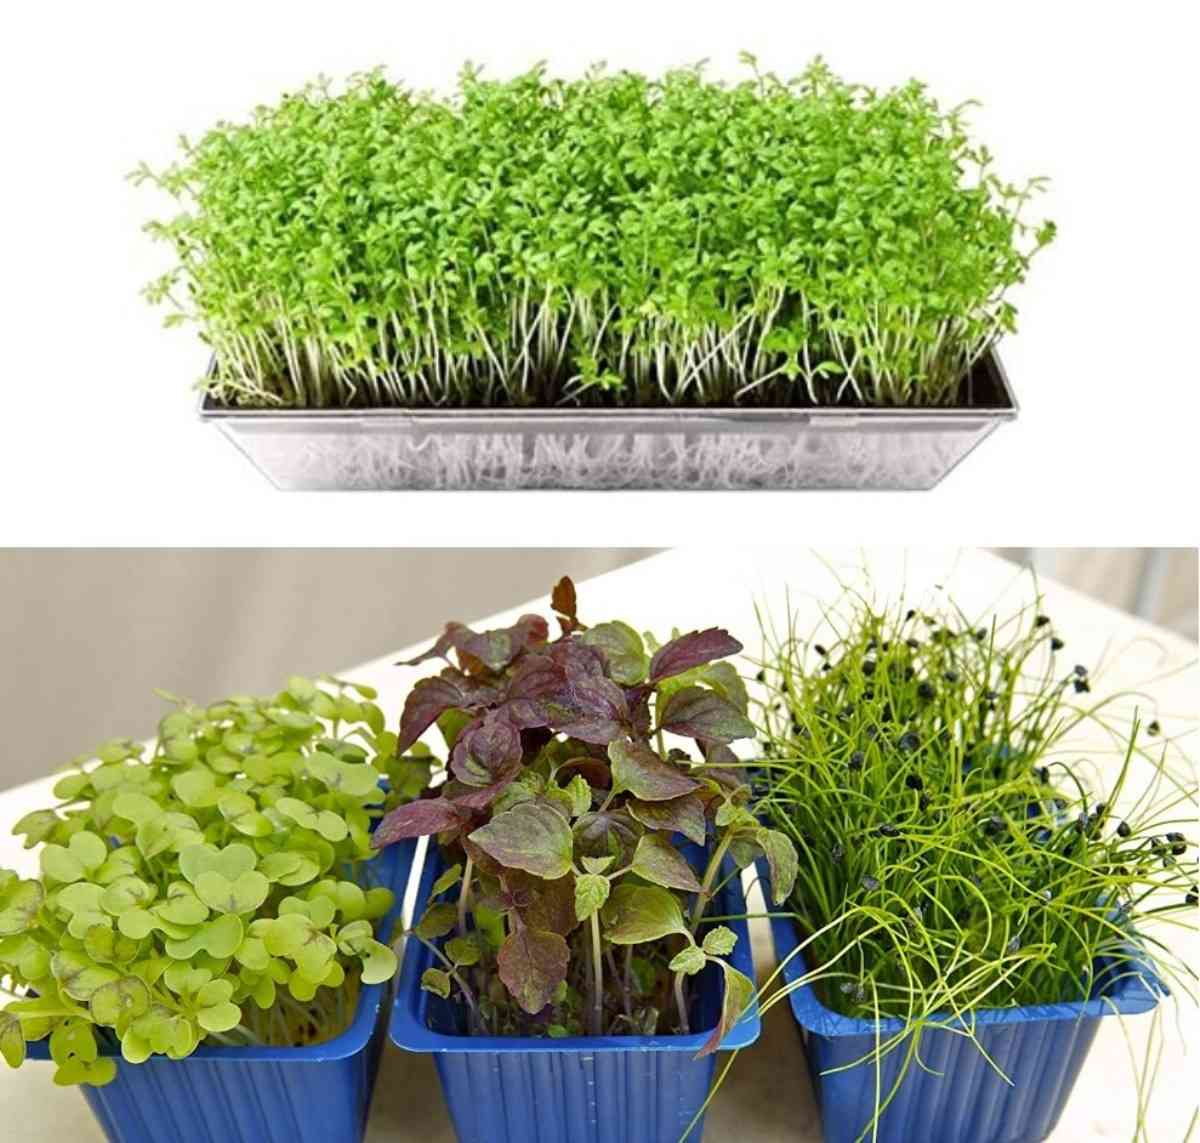 Growing Microgreens in Containers.